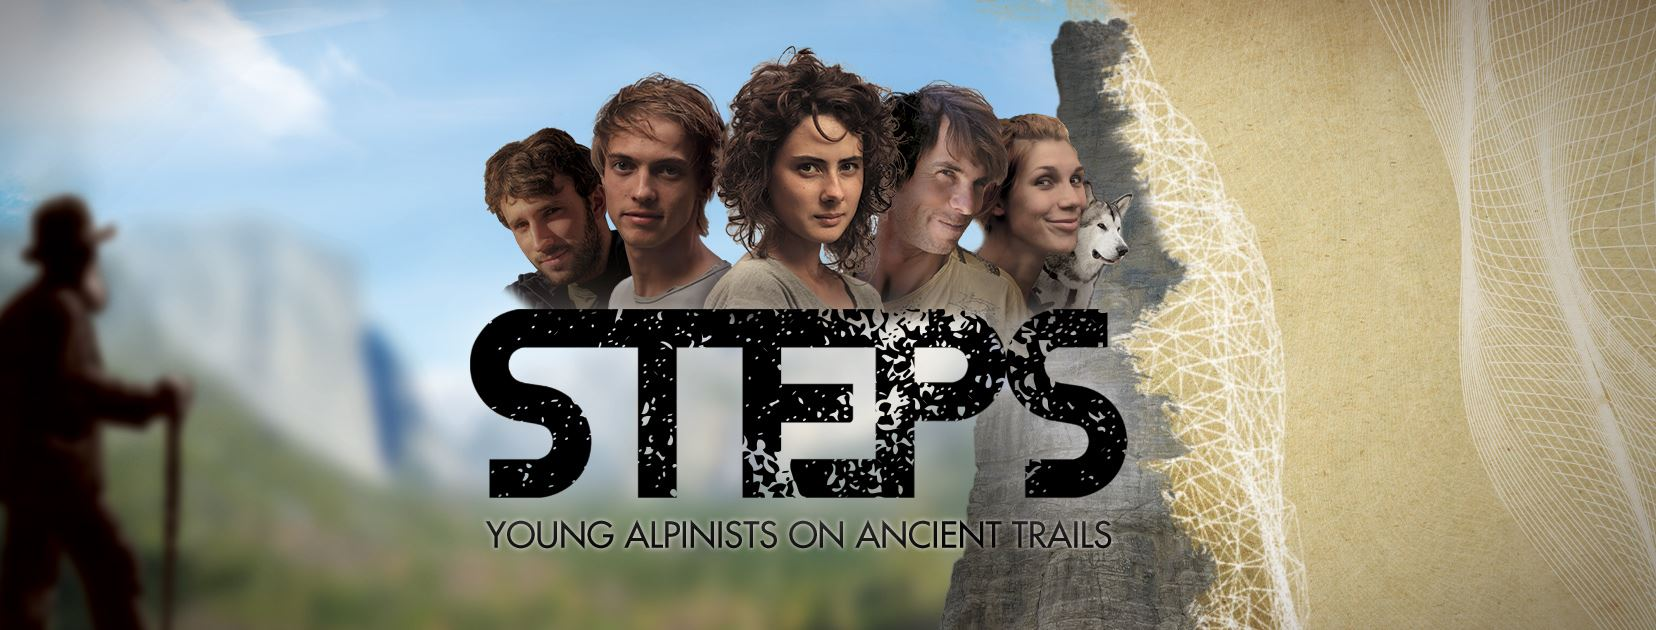 steps young alpinists on ancient trails